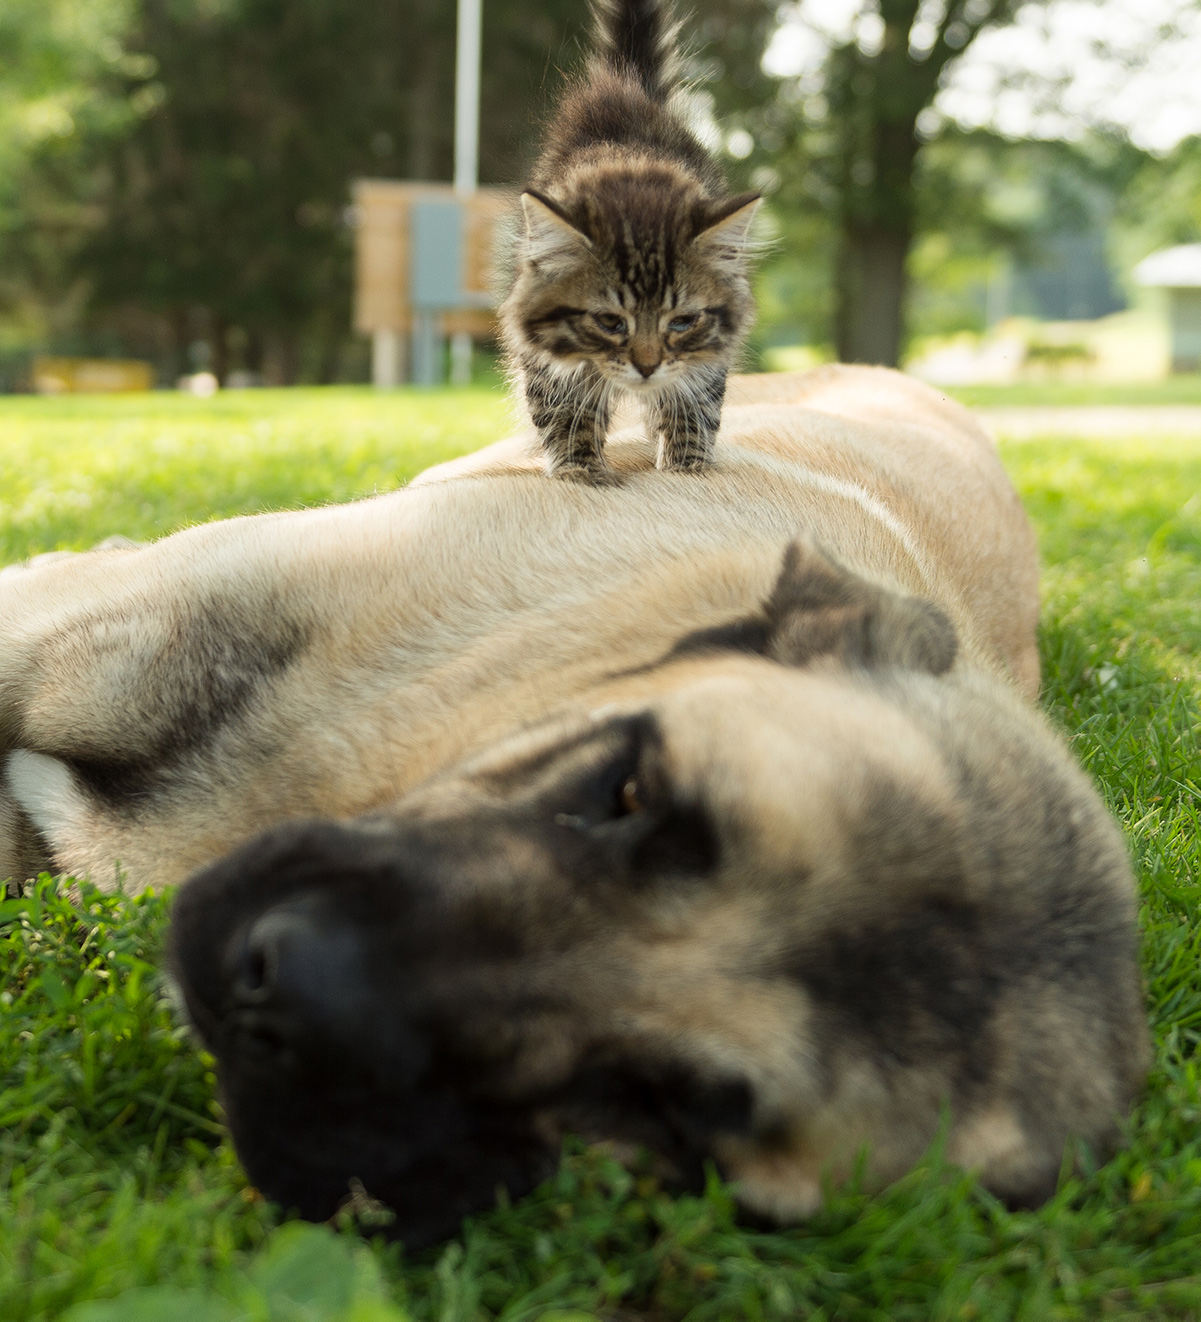 A large dog lays on its side while a striped kitten walks on top of it.